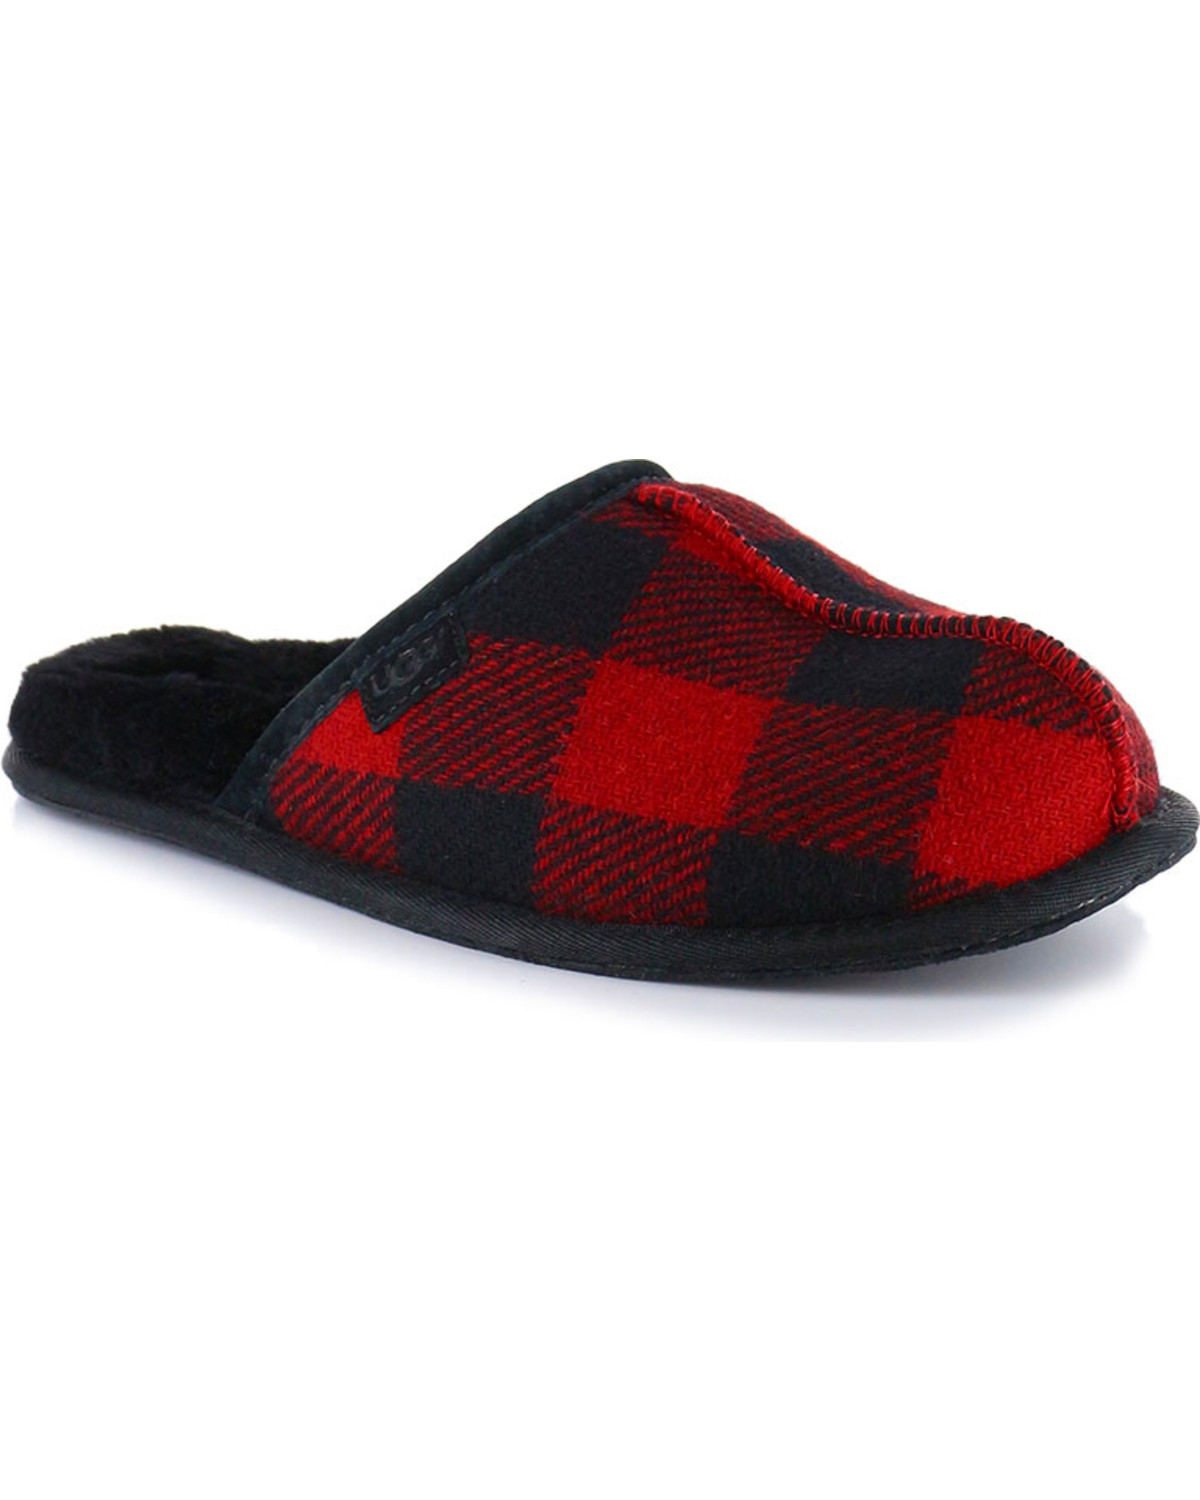 0587917fb Zoomed Image UGG® Men's Scuff Plaid Slippers, Red, ...